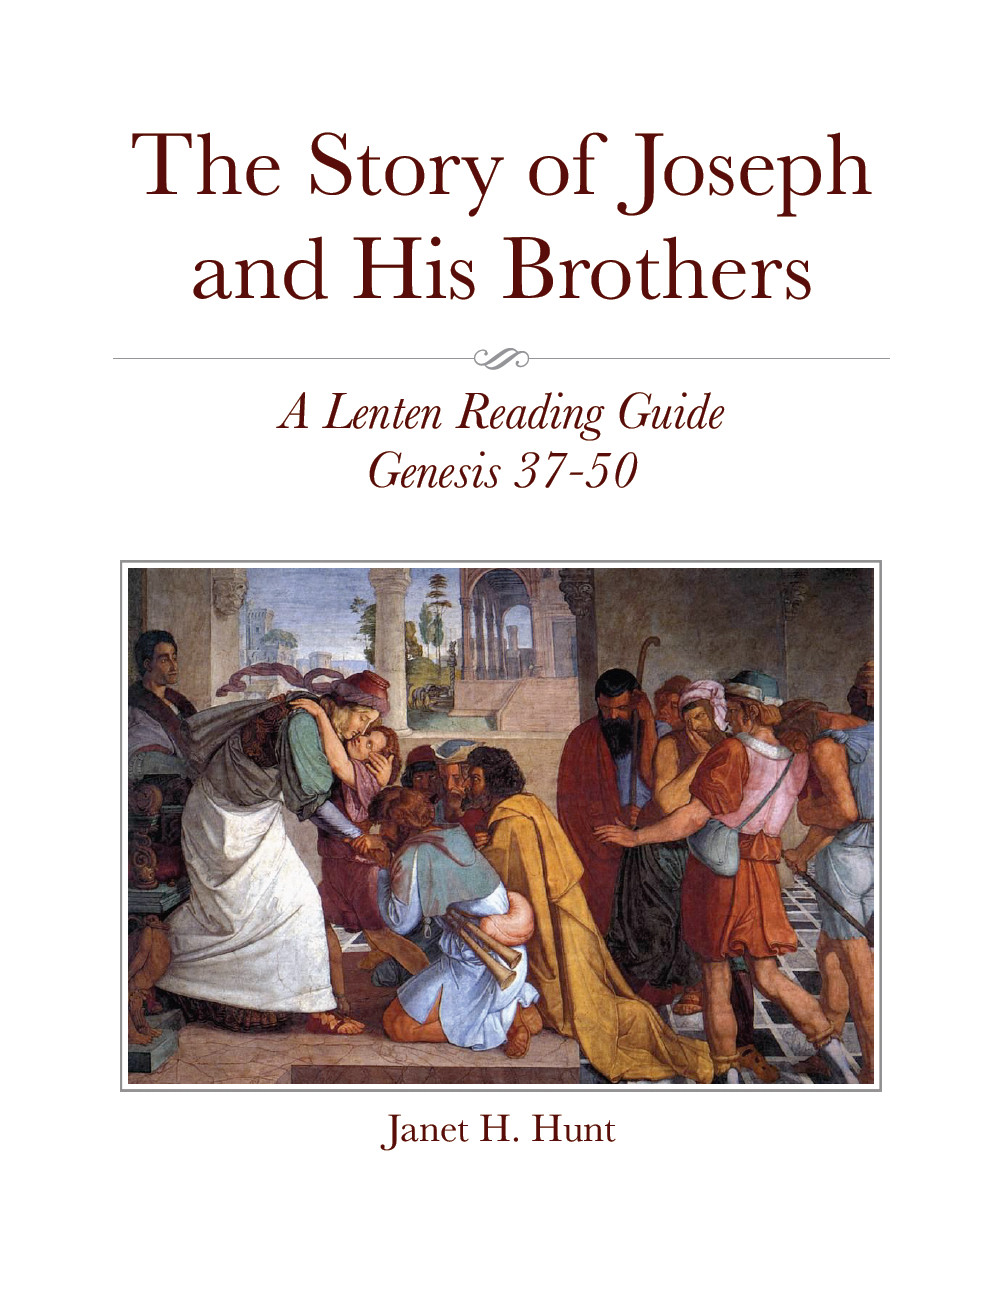 The Story of Joseph and His Brothers - A Lenten Reading Guide